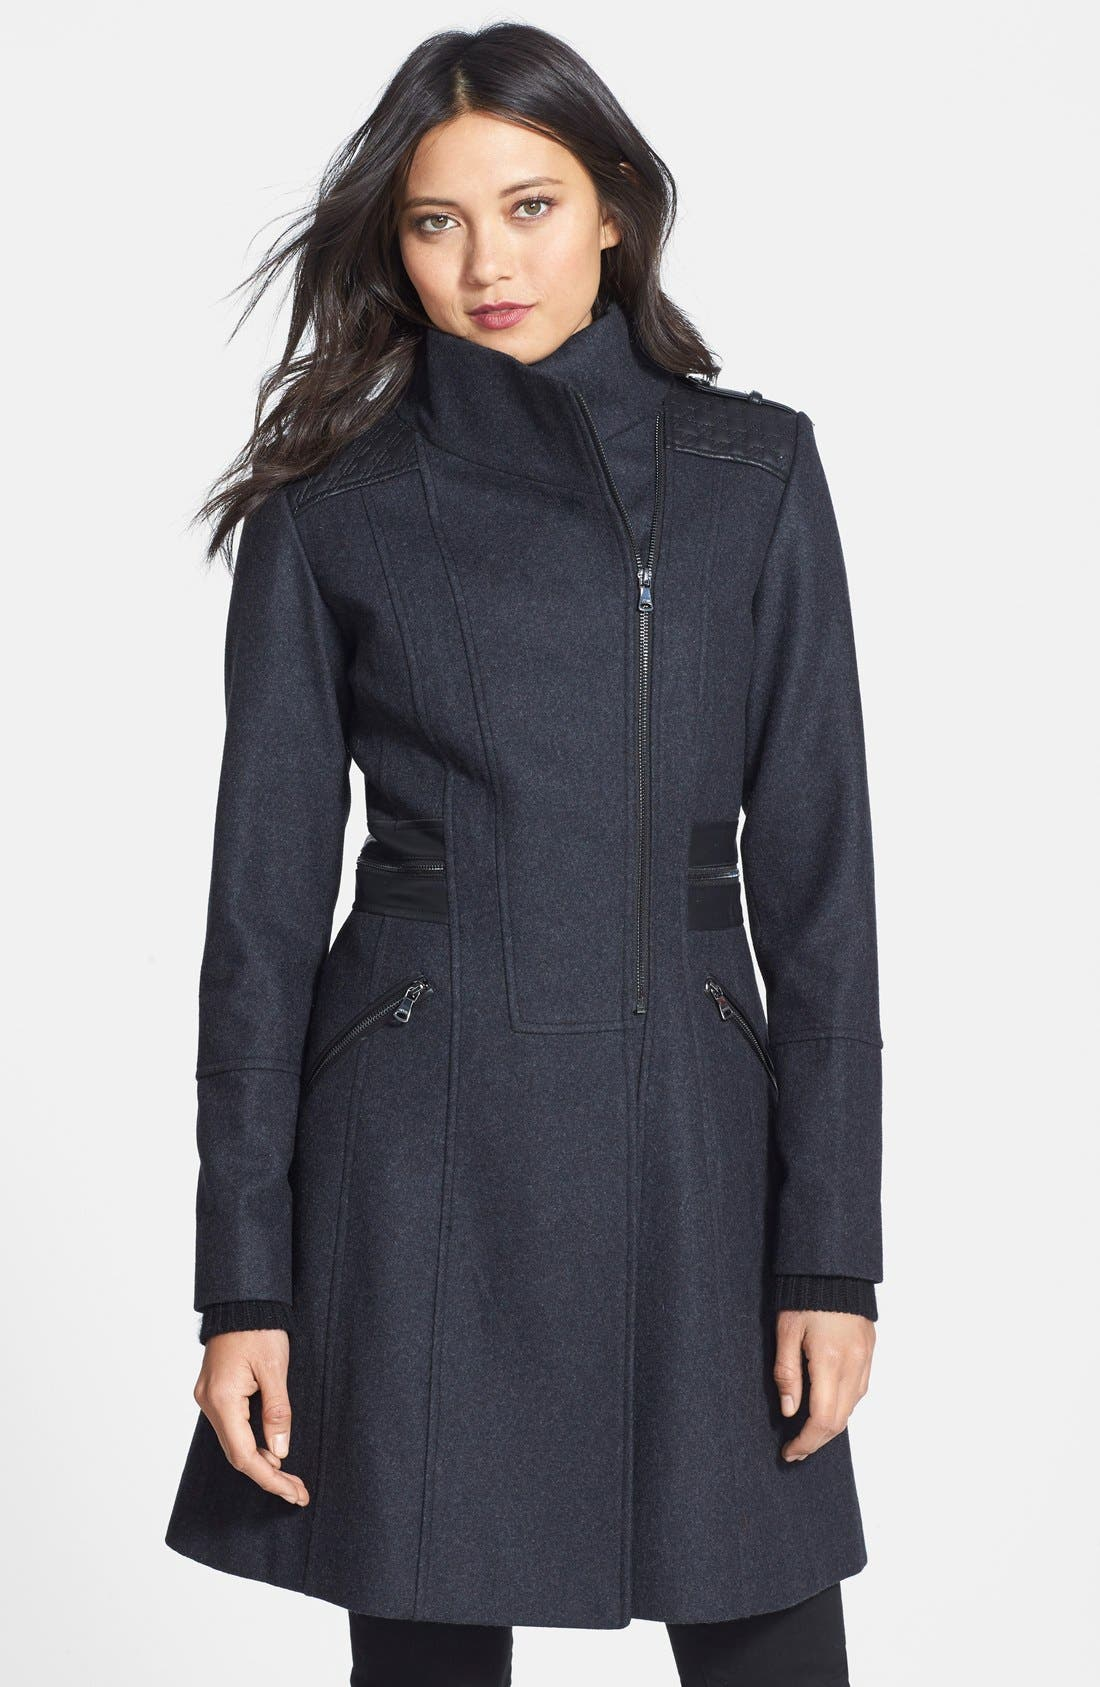 Alternate Image 1 Selected - GUESS Faux Leather Trim Stand Collar Wool Blend Coat